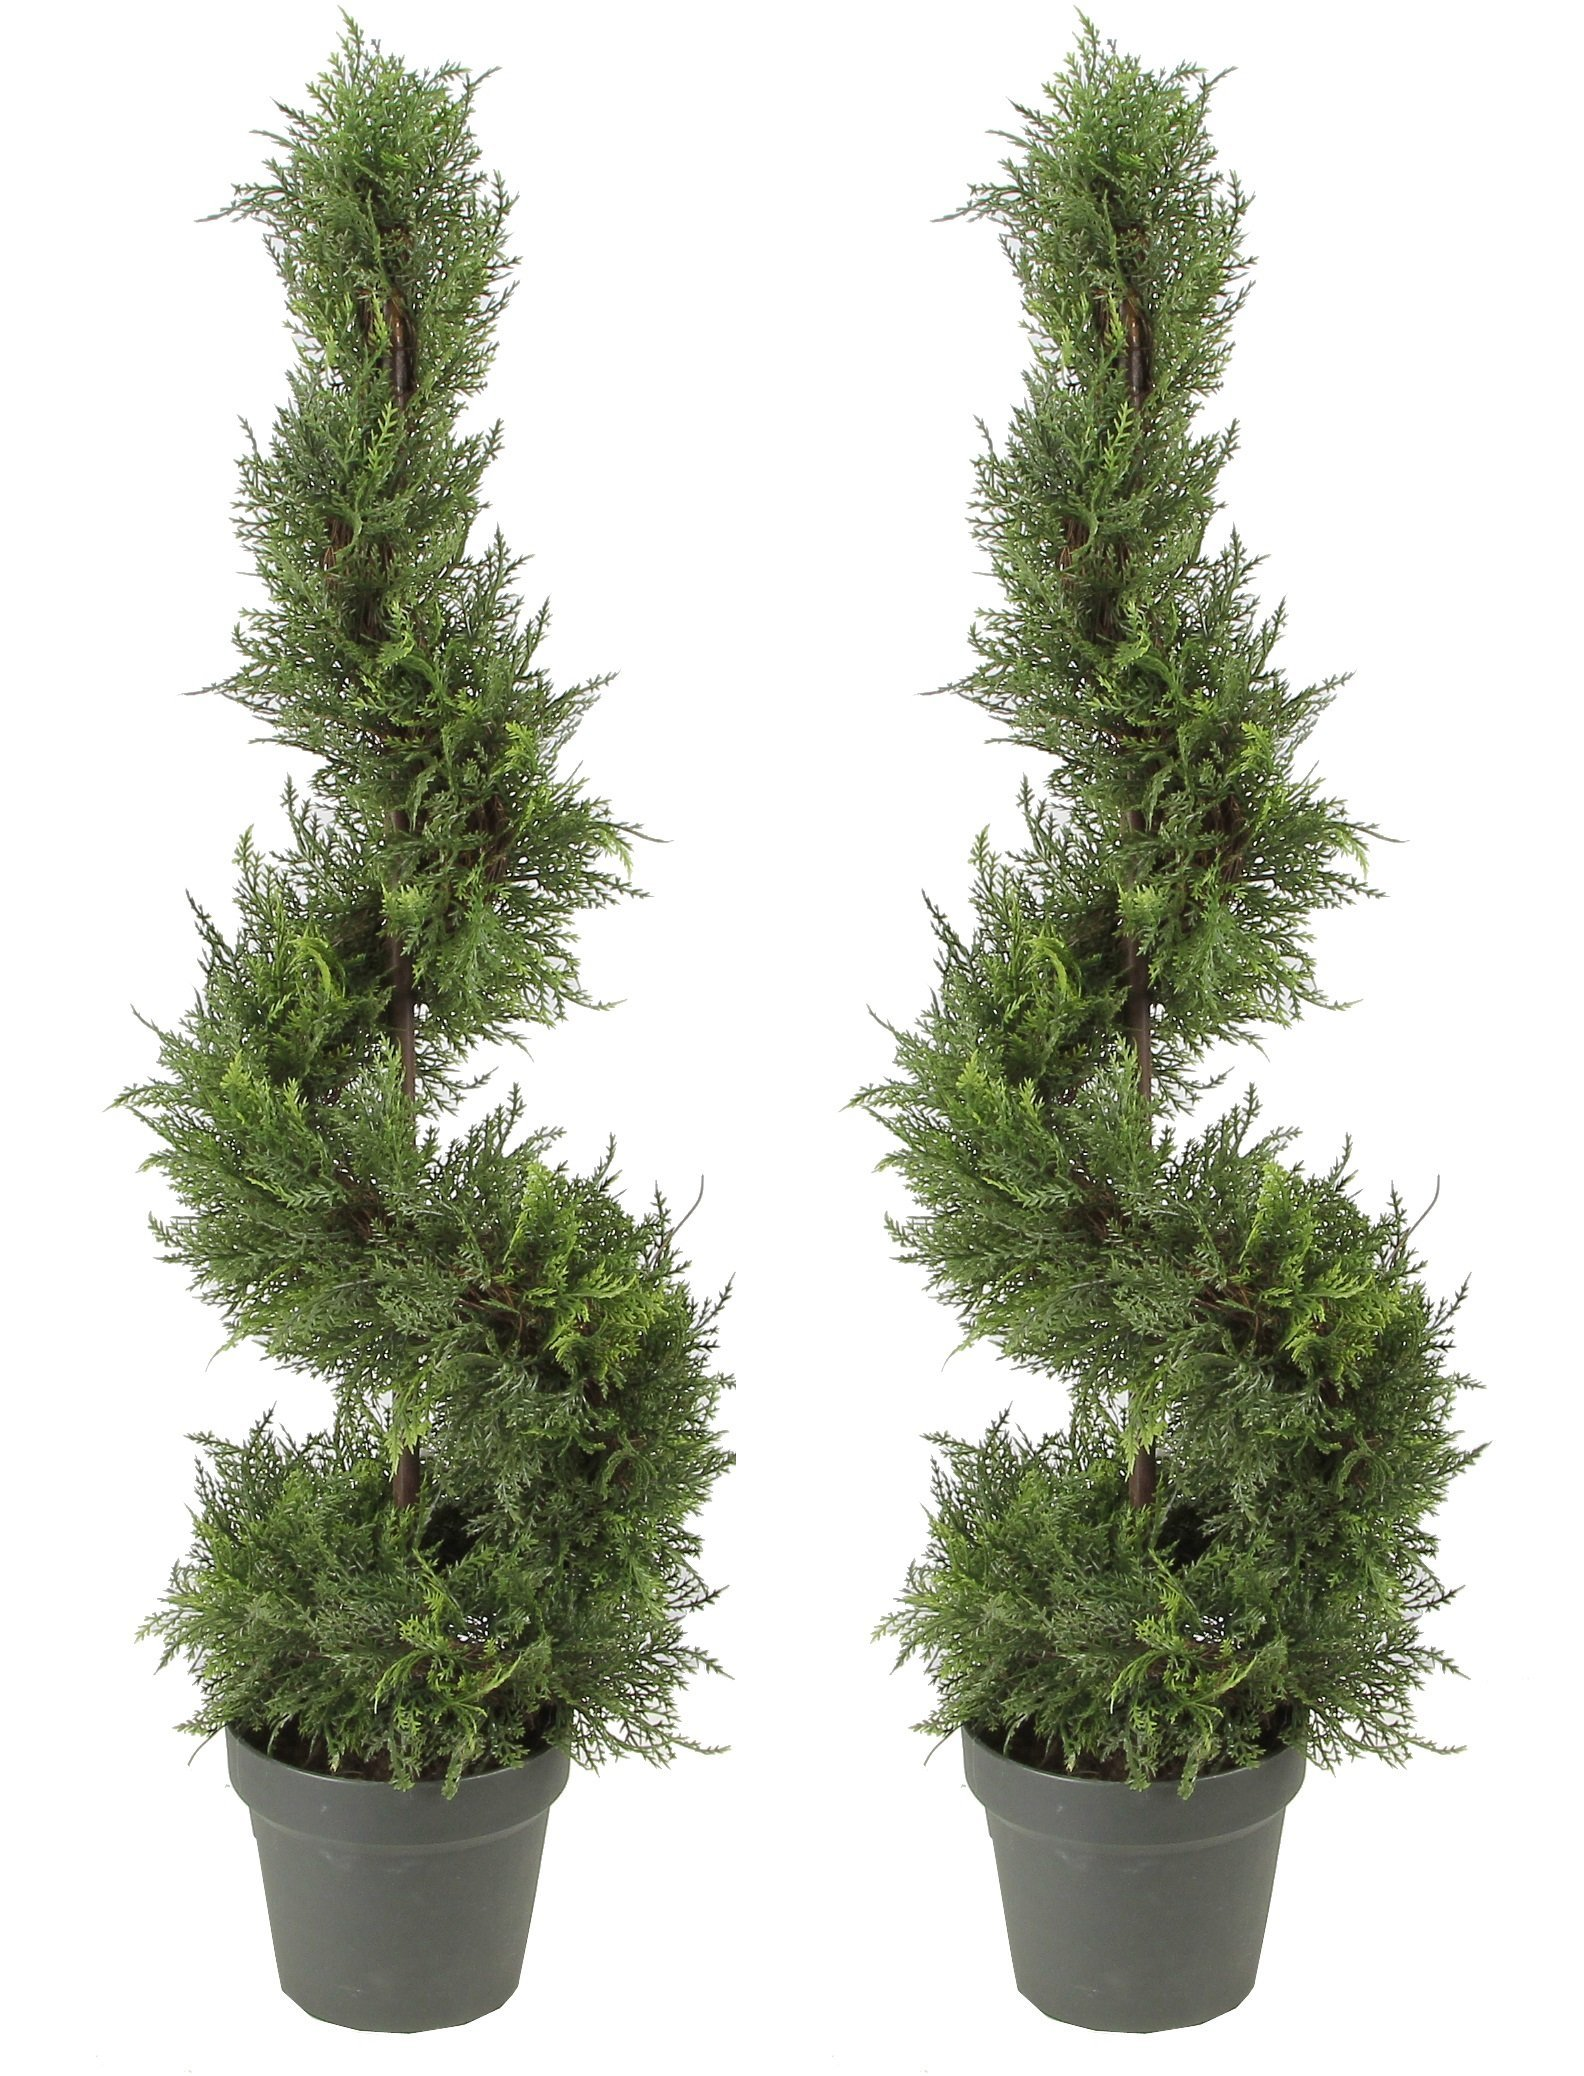 Admired by Nature 2 x 3' Artificial Cypress Leave Spiral Topiary Plant Tree in Plastic Pot, Green by Admired By Nature